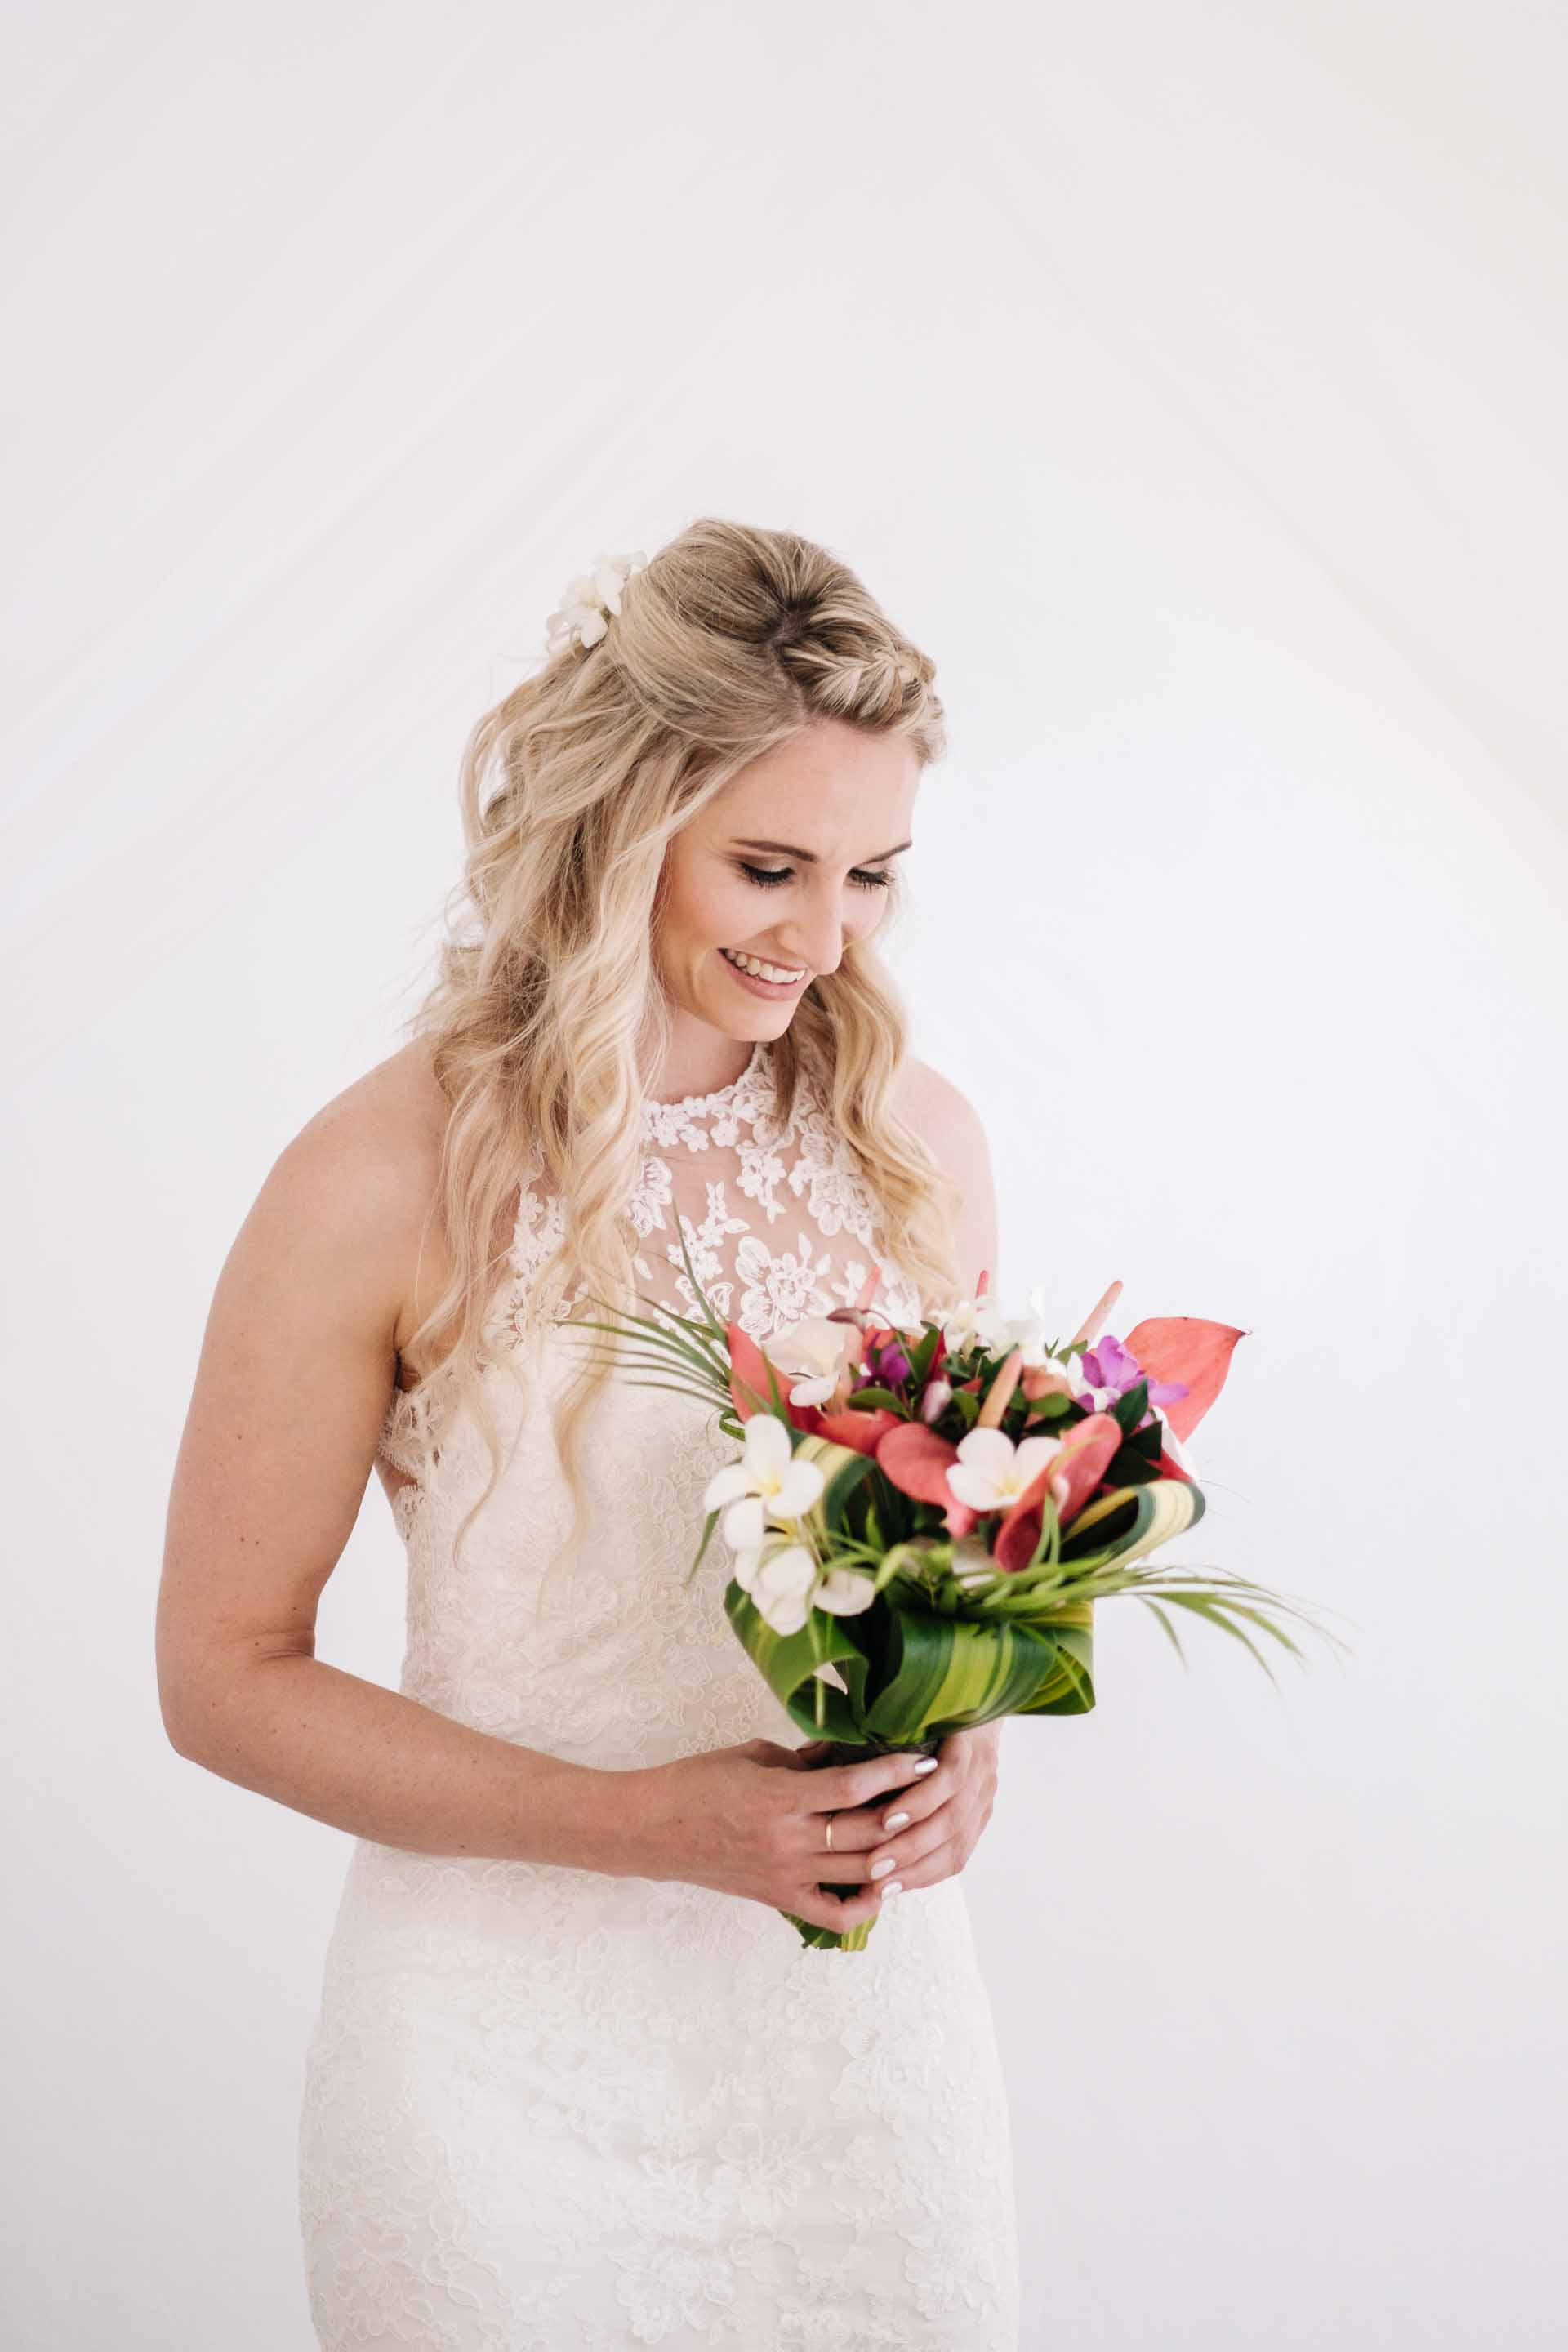 a portrait of the bride Holly with her bridal bouquet by her bed